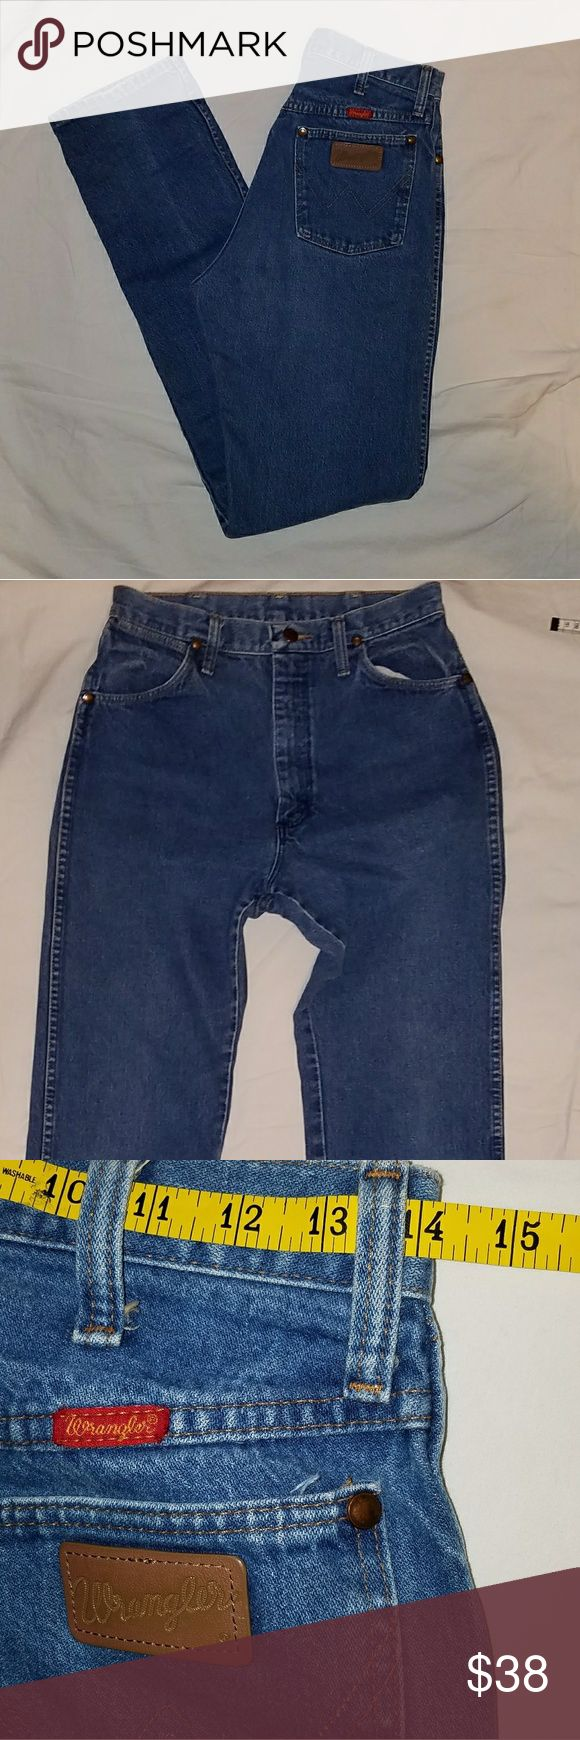 """Wrangler high waist Mom jeans Another pair of perfect high waist denim. Wranglers are made to make your butt look great and show off your curves! These are in EUC! Measurements laying flat: waist 14"""", hips 20"""", front rise 12"""",  back rise 15"""", inseam 35.5"""" Wrangler Pants"""